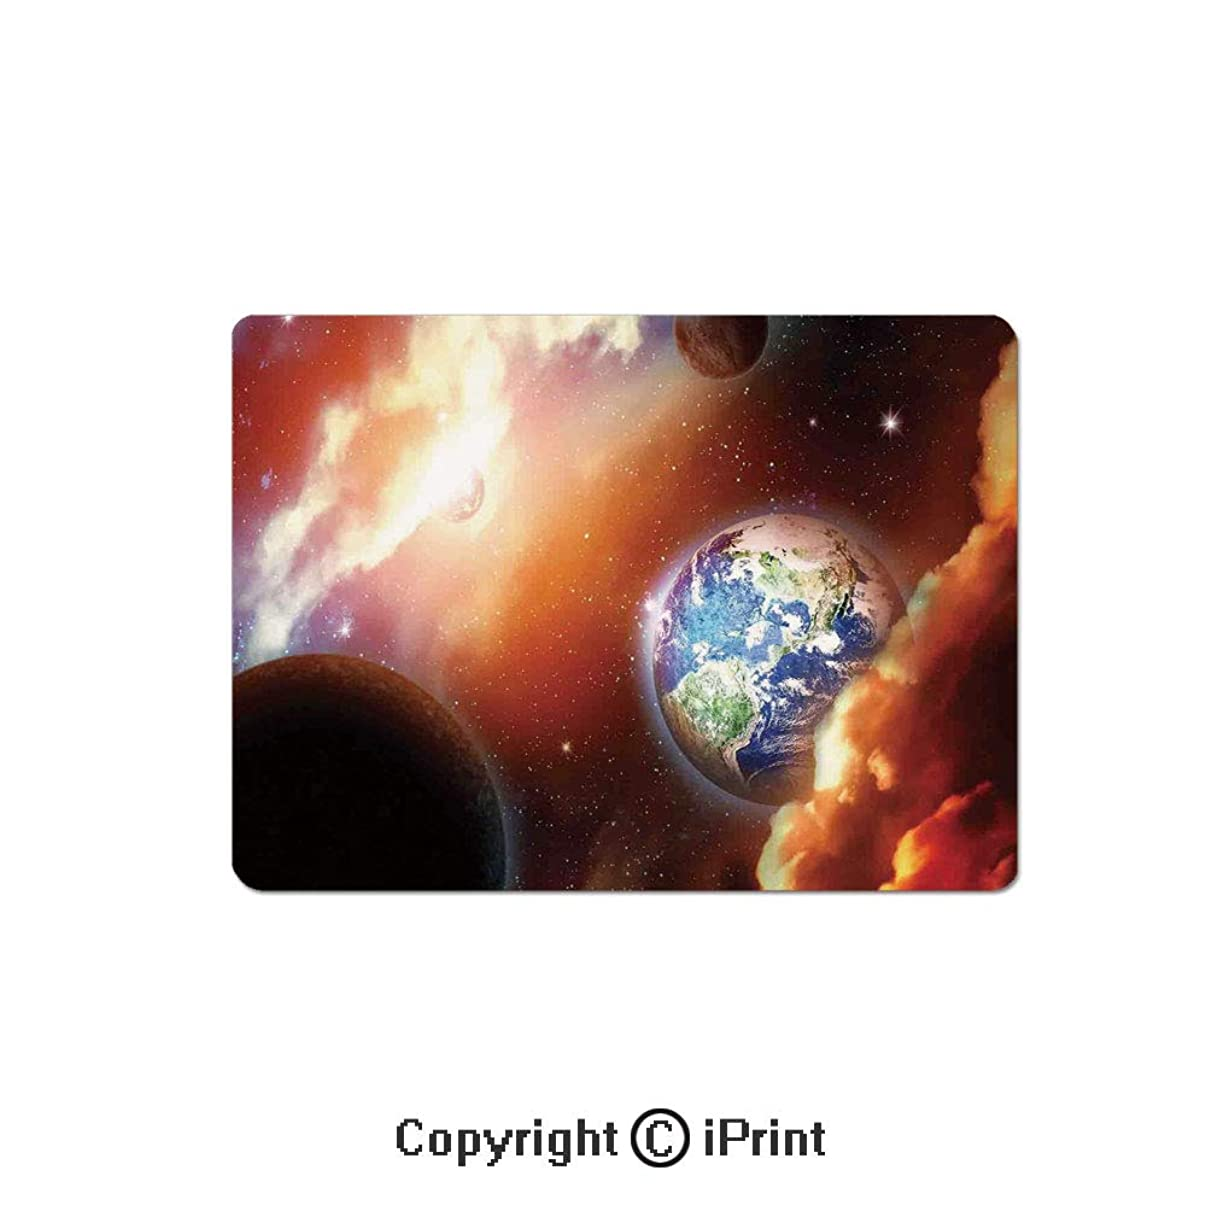 Oversized Mouse Pad,Dust Cloud Nebula Stars in Solar System Scene with Planet Earth Pluto and Neptune Gaming Keyboard Pad,9.8x11.8 inch Non-Slip Office Computer Desk Mat,Orange Blue